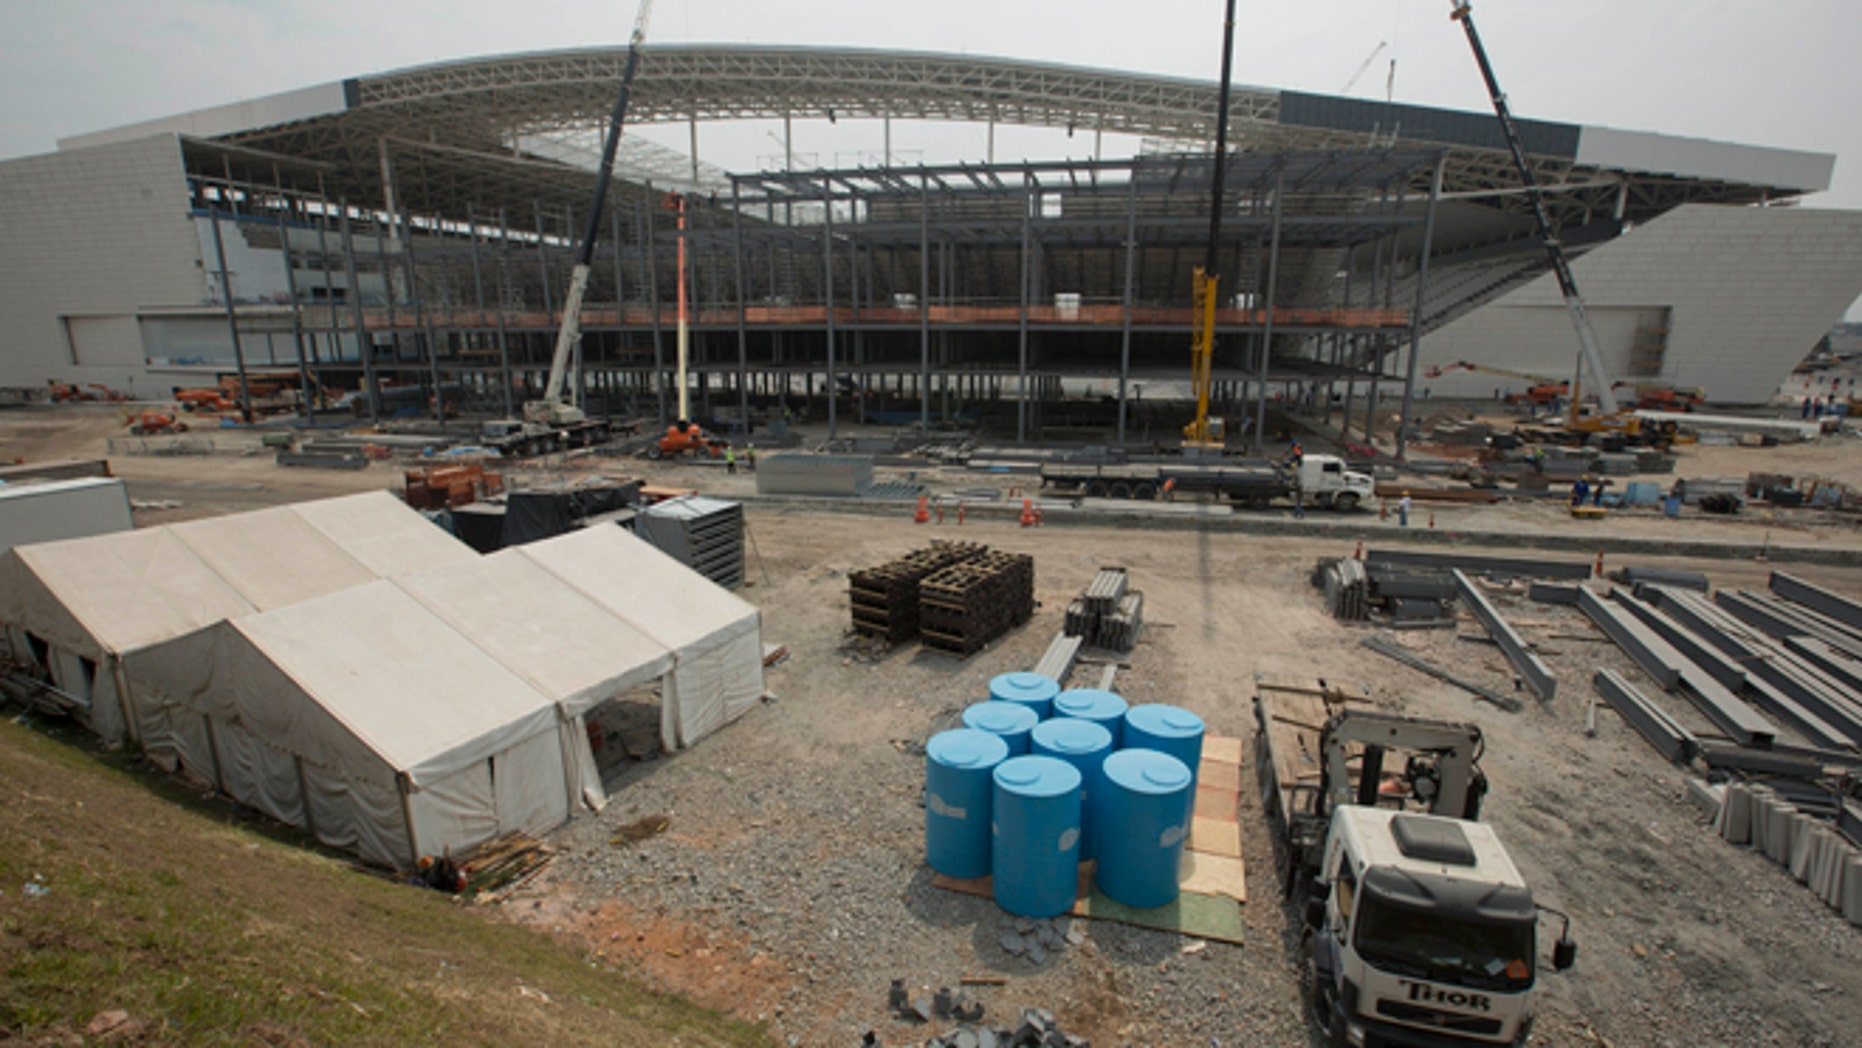 FILE - This April 9, 2014 file photo shows construction at the Itaquerao stadium in Sao Paulo, Brazil. The stadium is slated to host the World Cup opener match between Brazil and Croatia on June 12. About 20,000 temporary seats are being installed behind the goals to increase the stadium's capacity to nearly 70,000.  (AP Photo/Andre Penner, FIle)